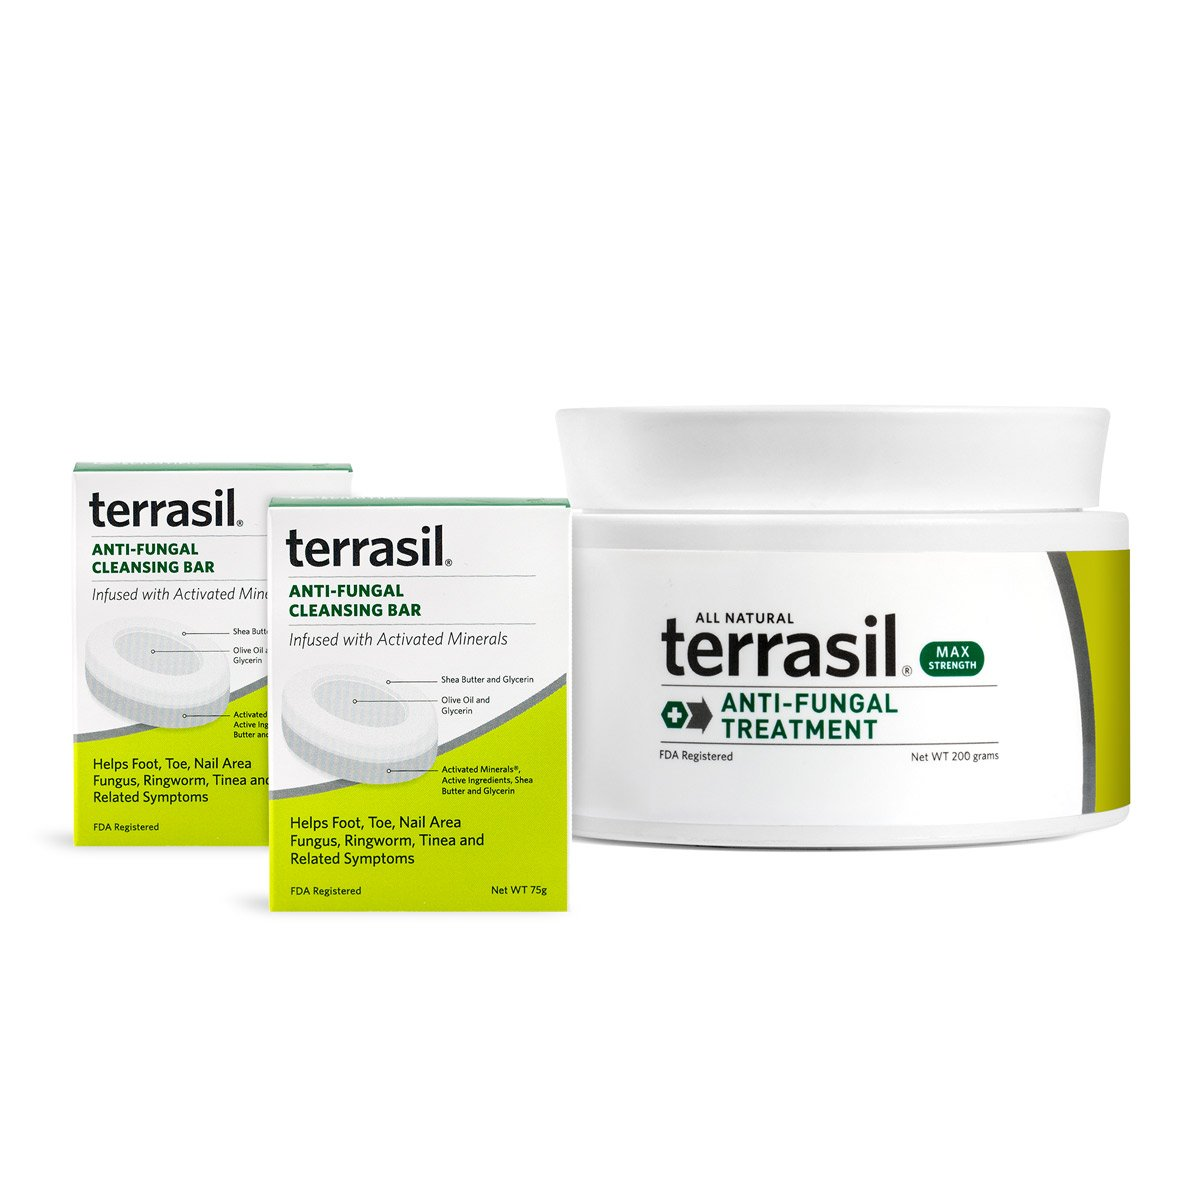 terrasil® Anti-fungal Treatment MAX + Anti-fungal Cleansing Soap - 6X Faster Doctor Recommended 100% Guaranteed All-Natural Soothing Clotrimazole OTC-Registered - Complete Treatment- 200g + 2 Bars by Aidance Skincare & Topical Solutions